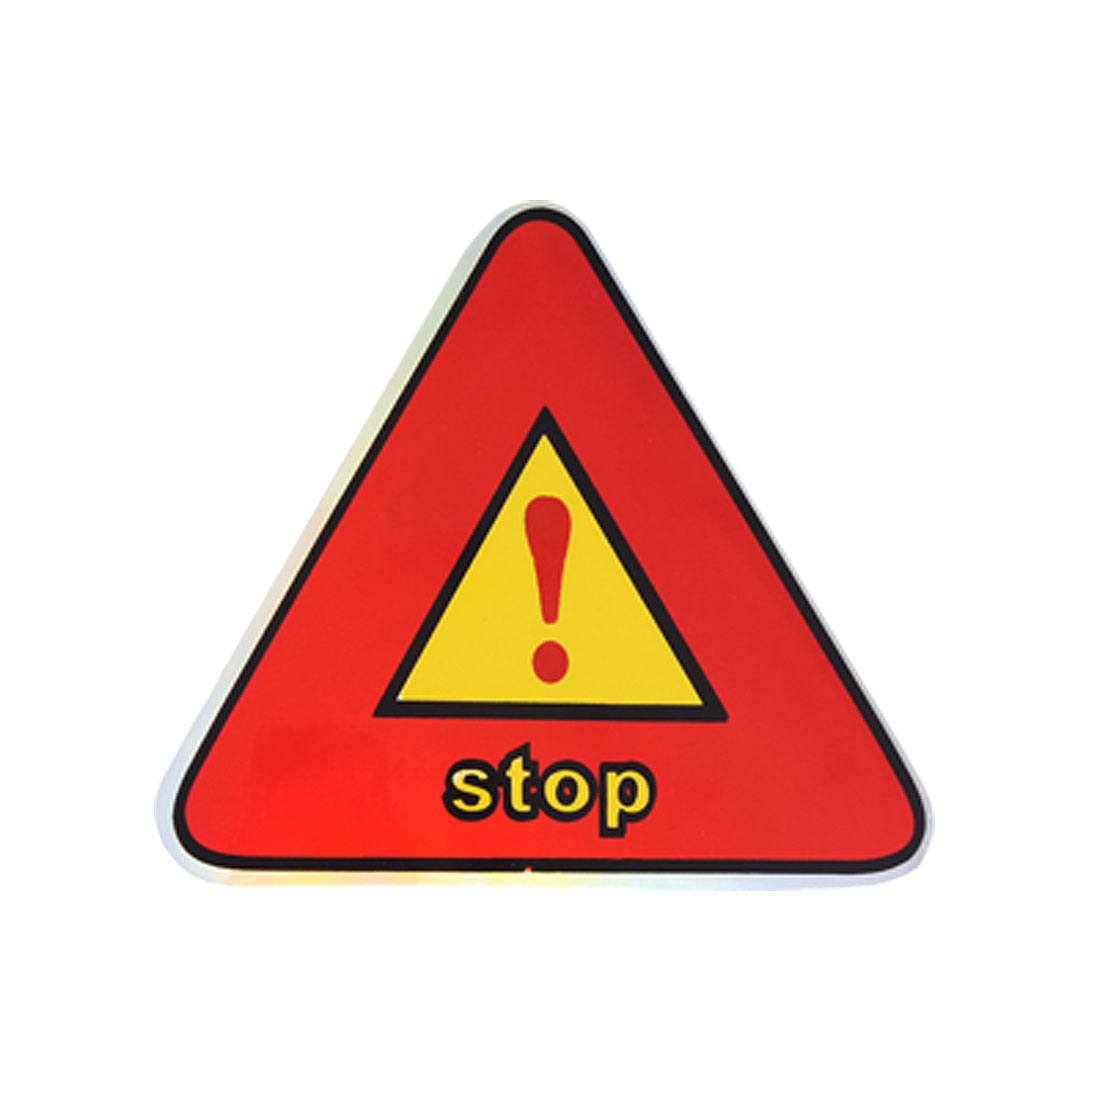 Car Auto Warning Stop Reflective Stickers Decals Red 3 Pcs